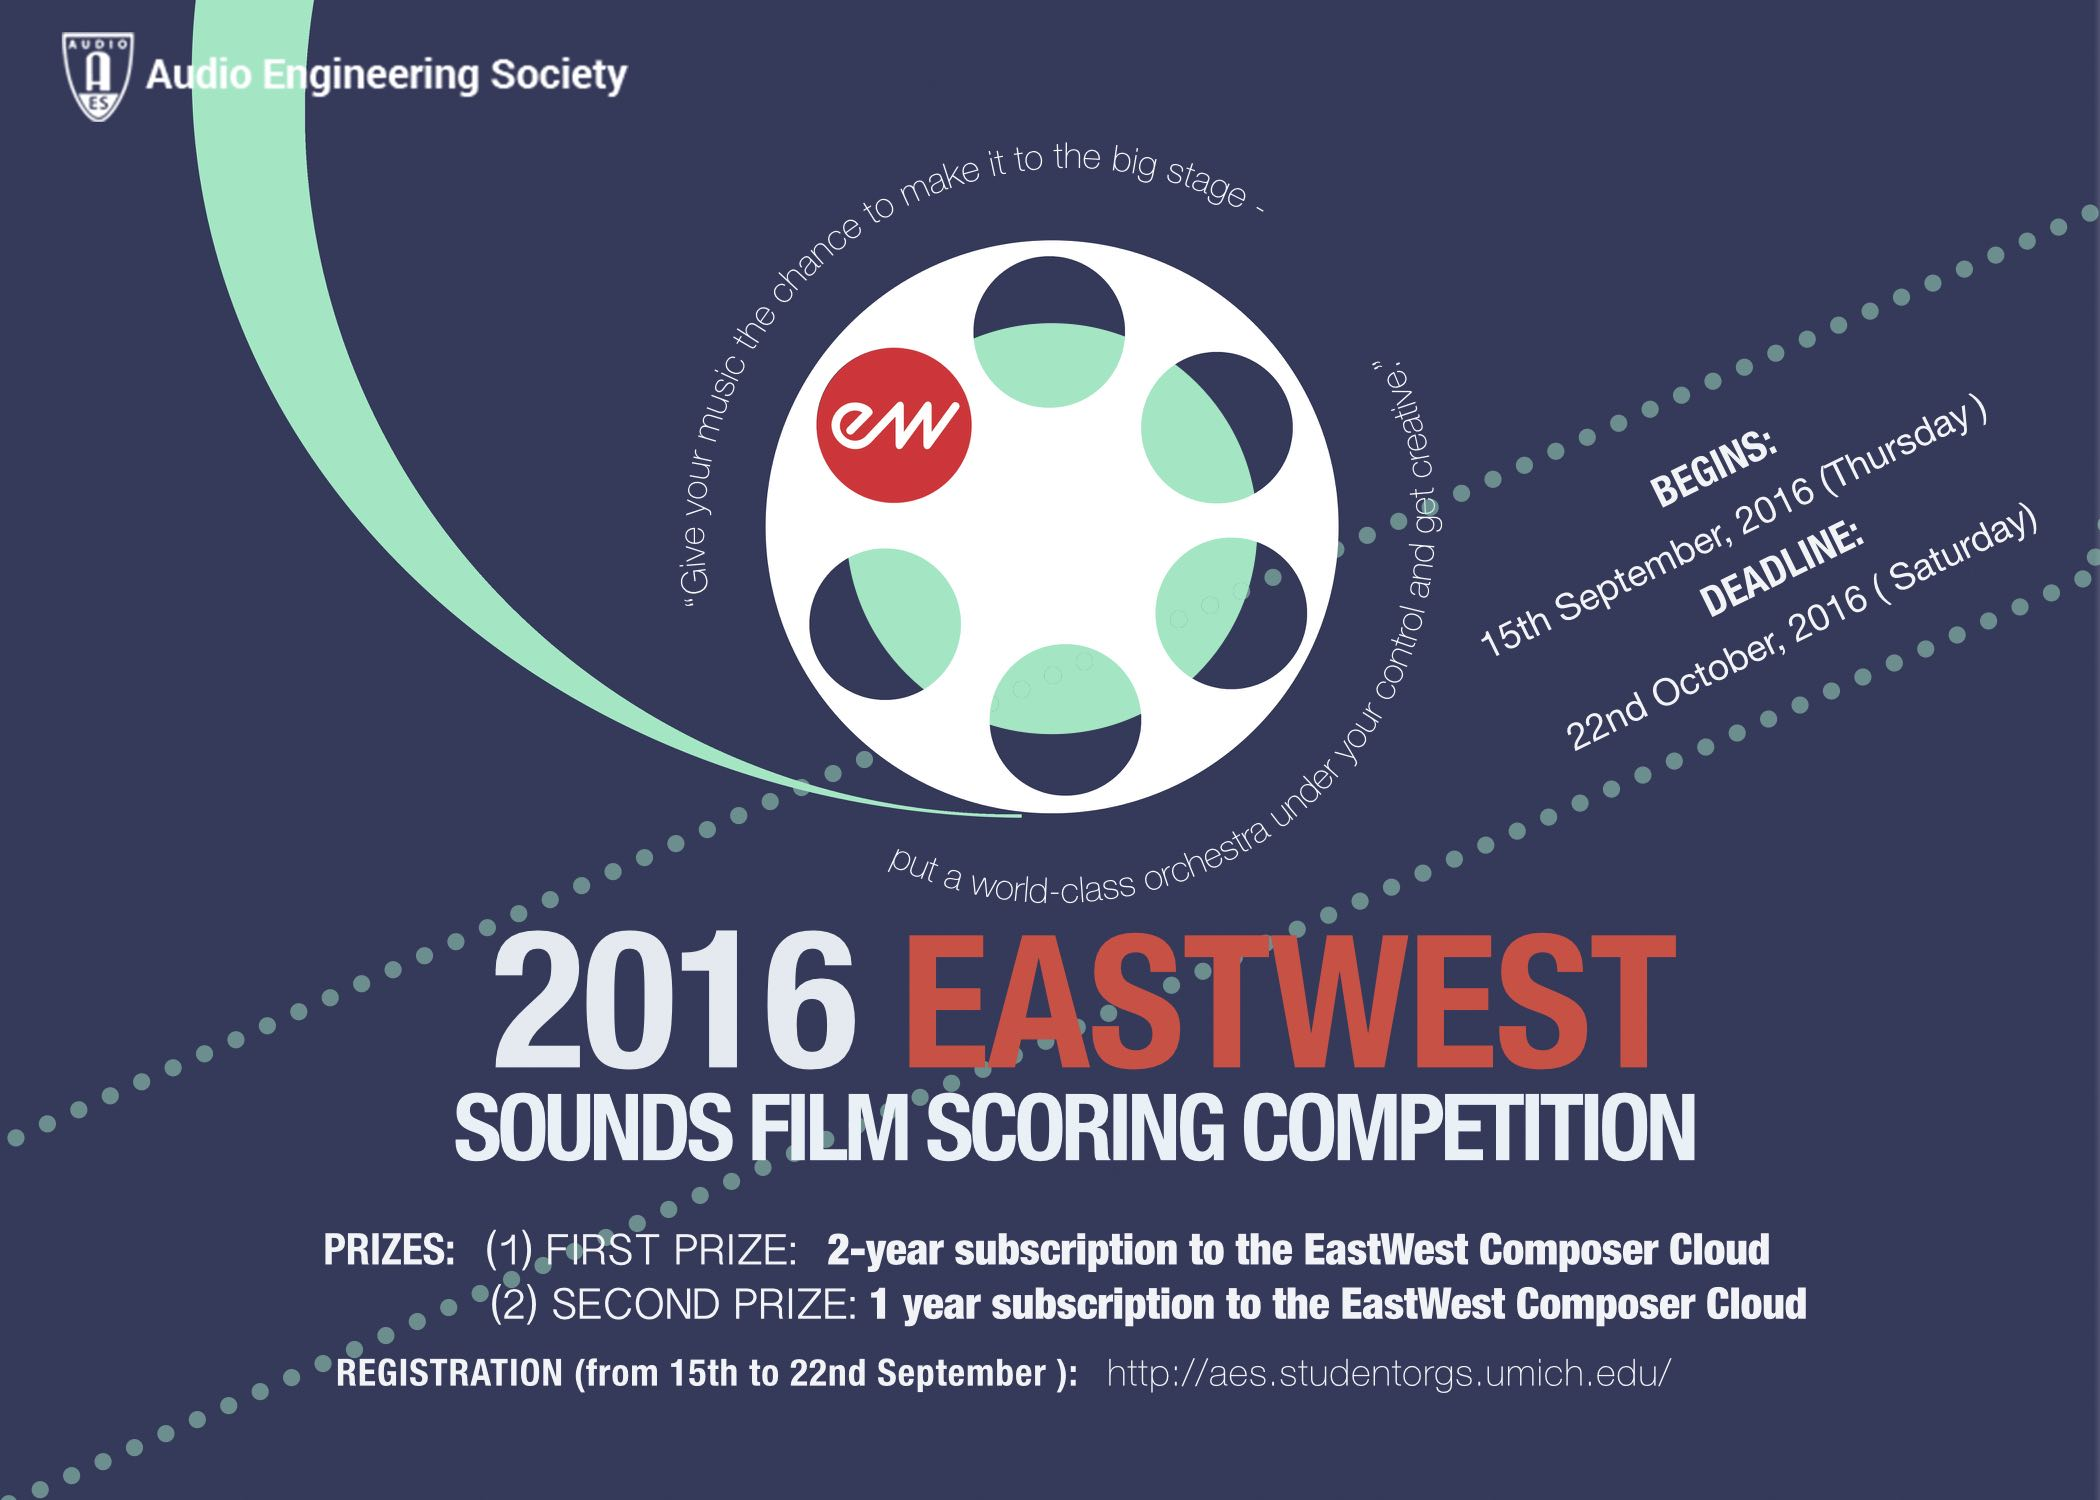 AES EW film scoring comp2